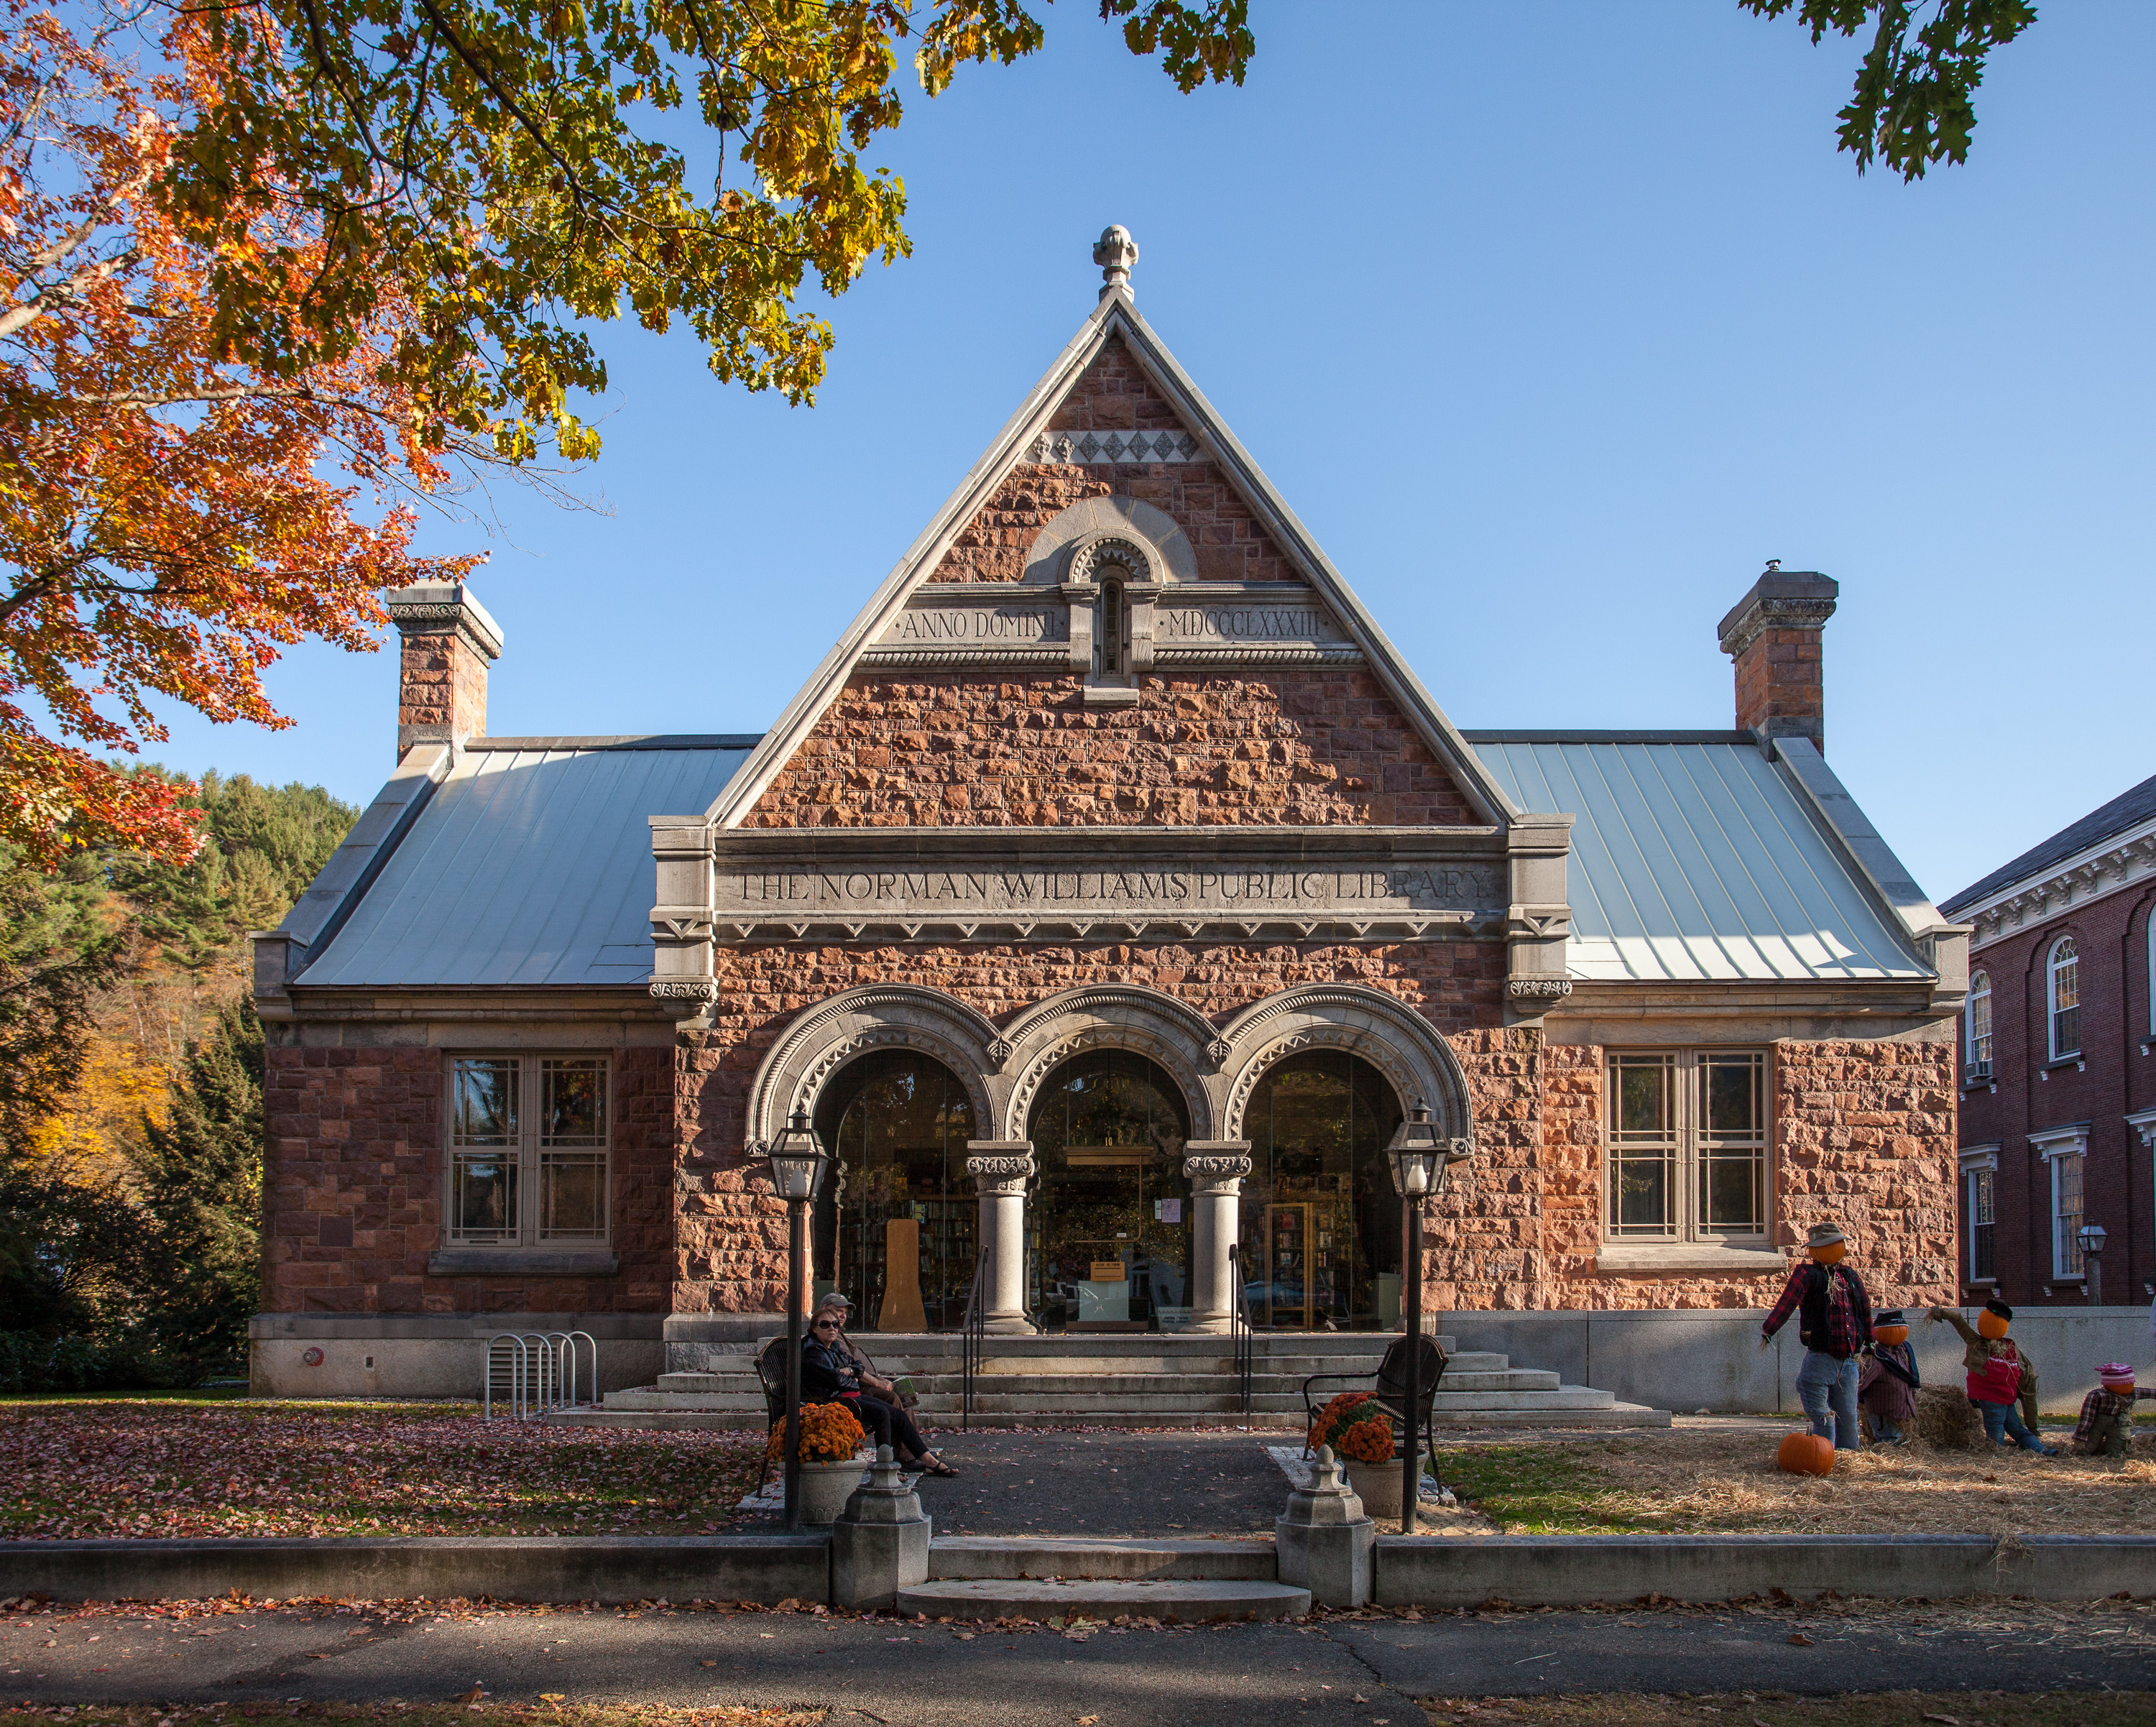 Image result for norman williams public library